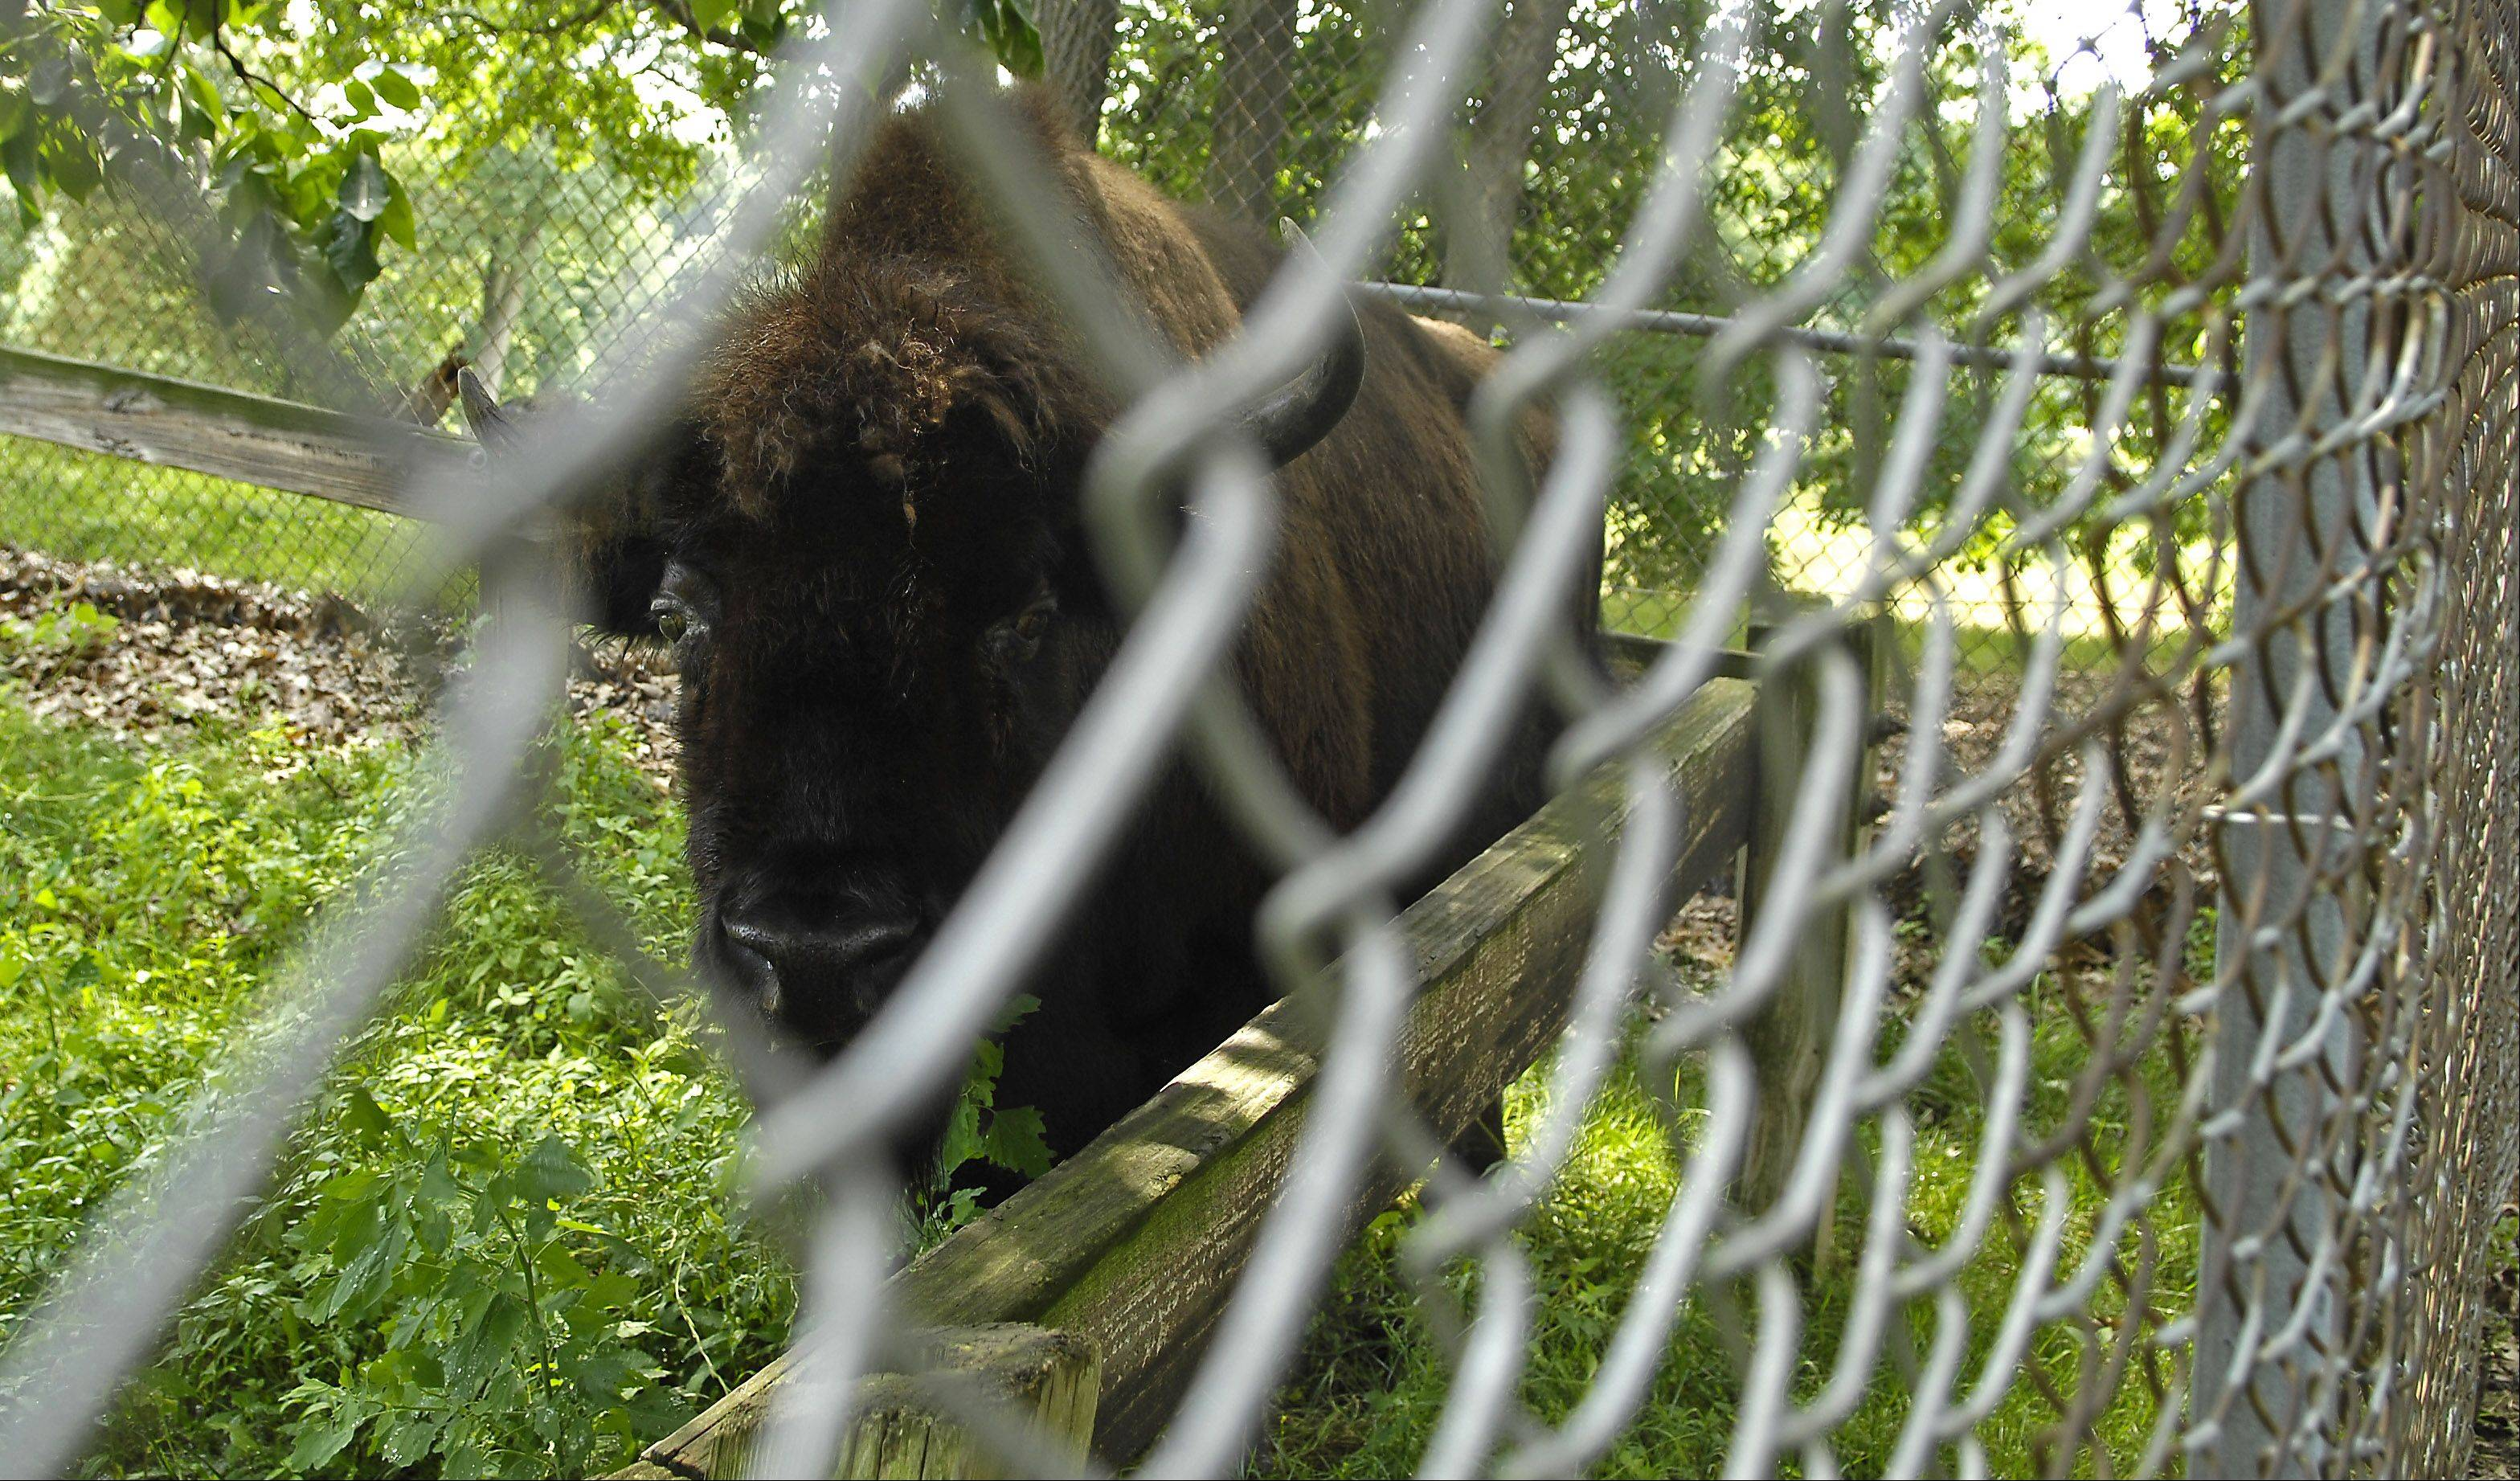 Partnership brings bison fence to Elgin's Lords Park